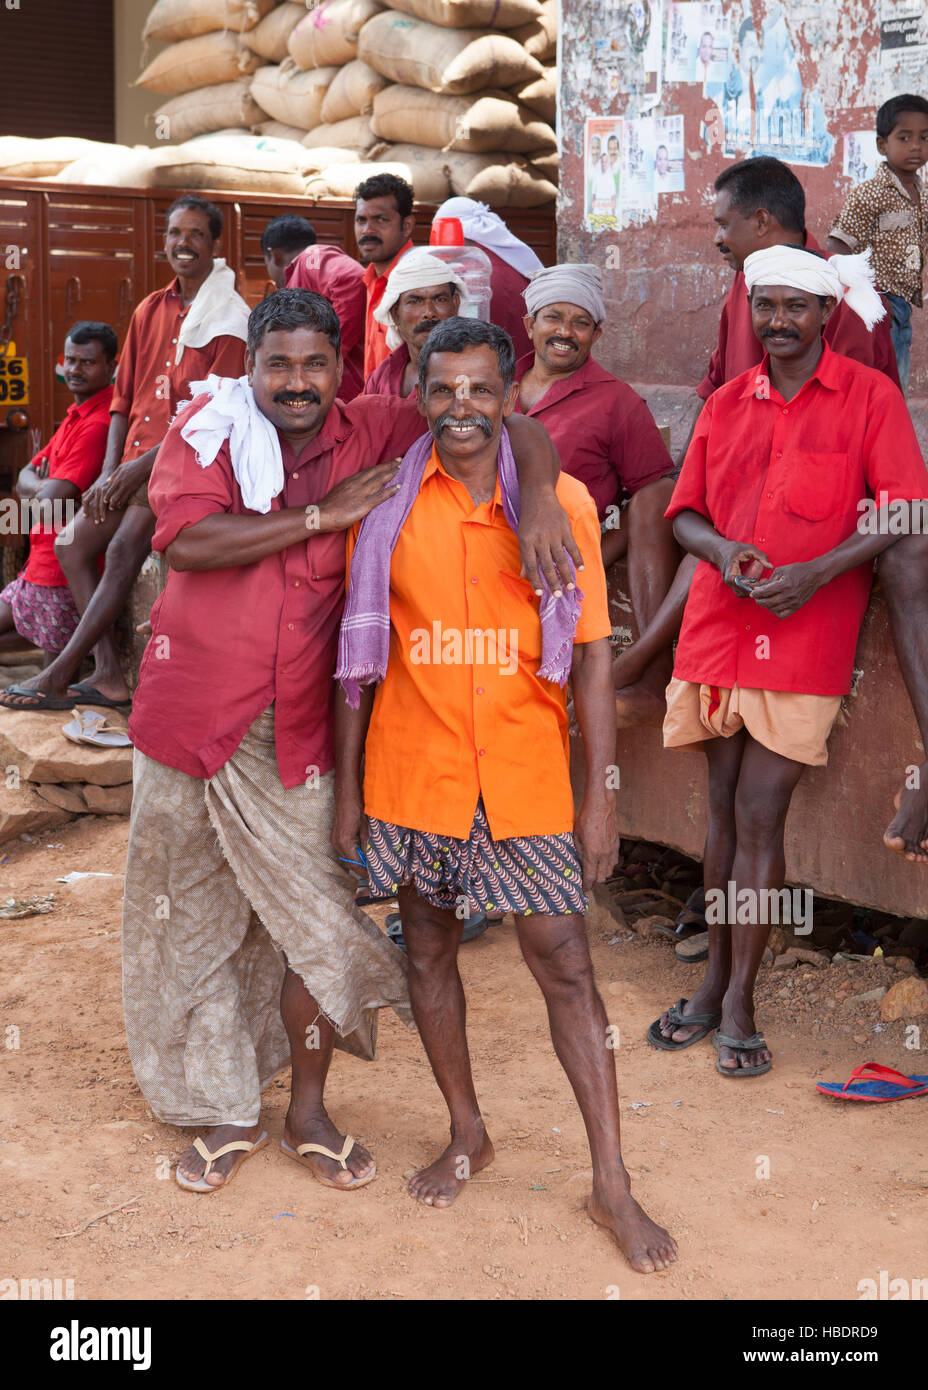 Group of manual labourers in Alappuzha (Alleppey), Kerala, India, - Stock Image